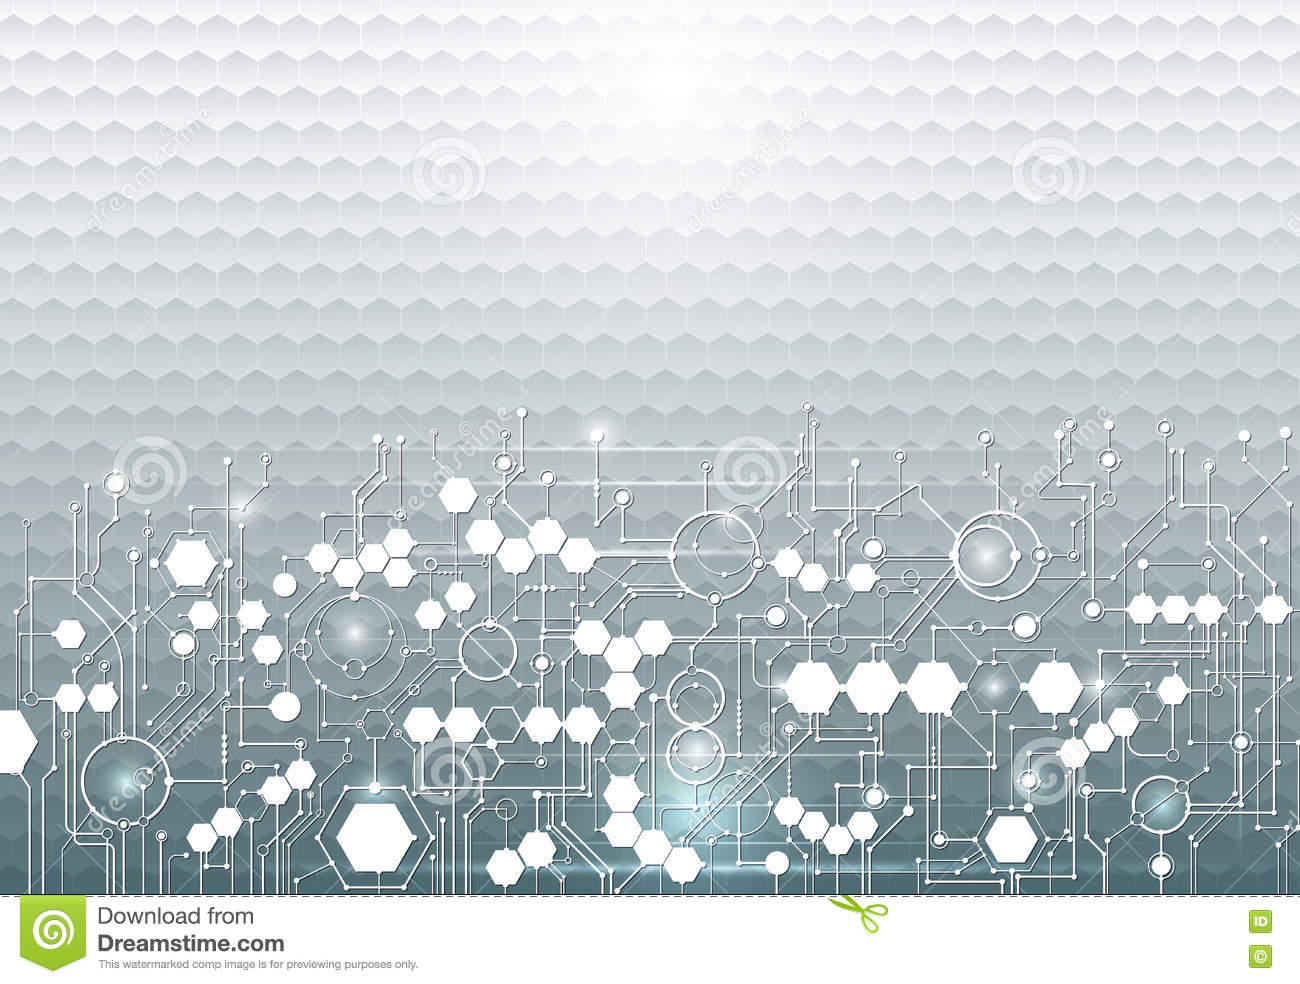 Abstract Hexagon Circuit Hi Tech Pattern Technology Innovation Board Design Over Green Background Vector Illustration Concept 79278078